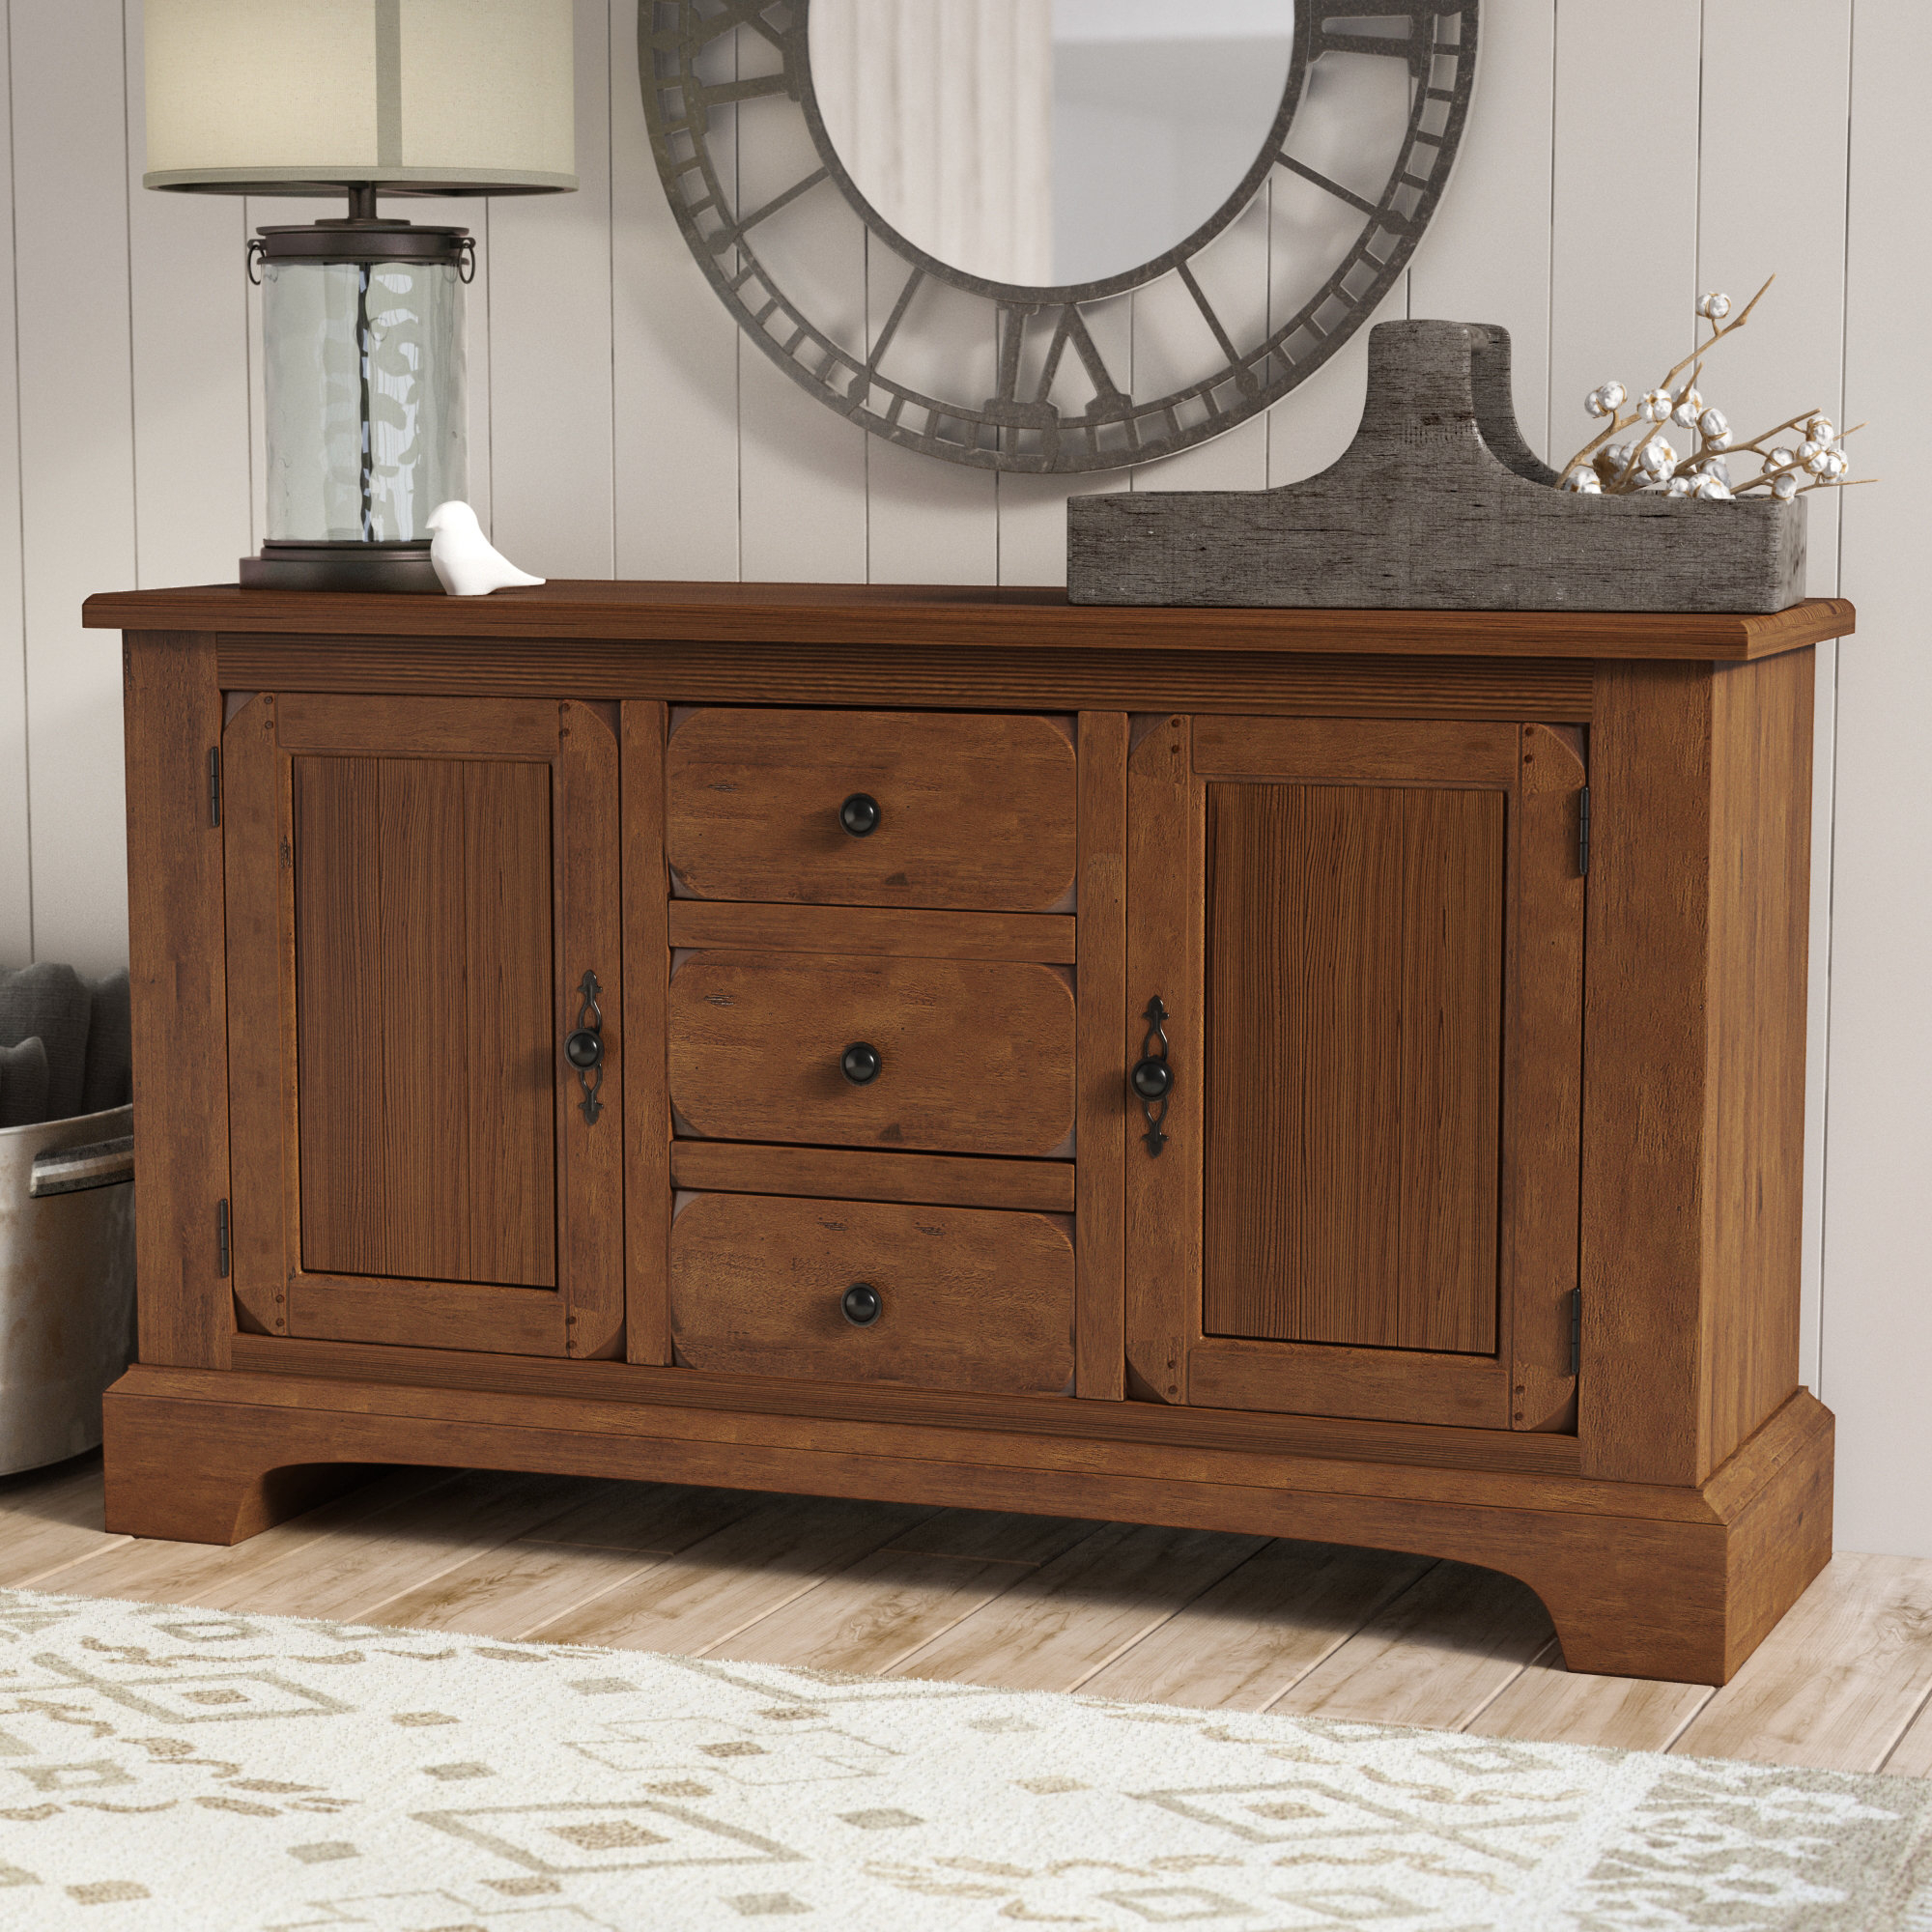 Koffler Sideboard Throughout Most Up To Date Sayles Sideboards (#11 of 20)